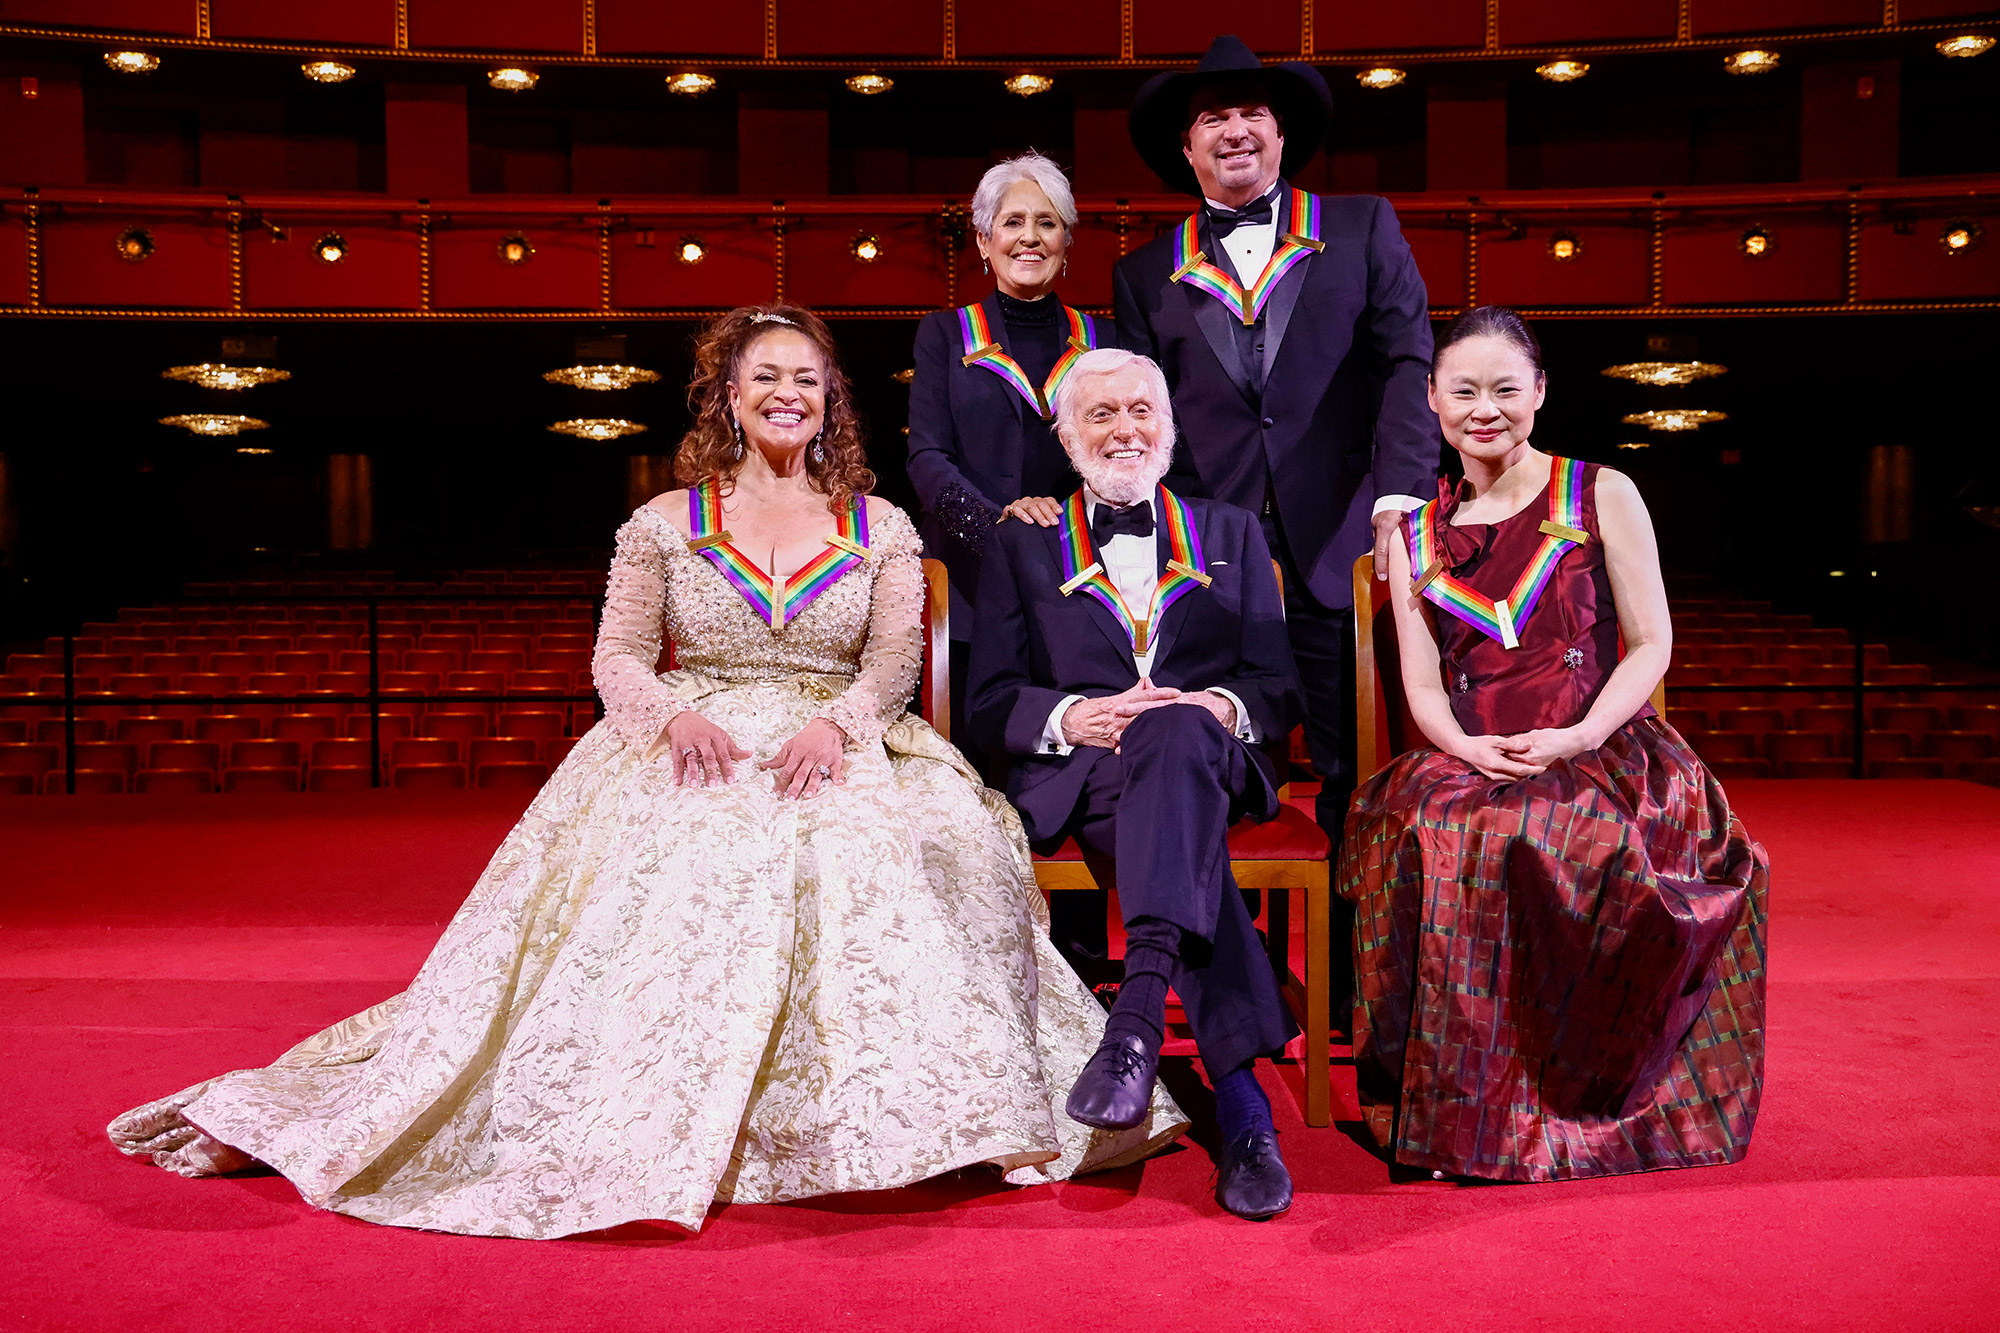 Debbie Allen, Joan Baez, Dick Van Dyke, Garth Brooks and Midori Gotō pose during the 43rd Annual Kennedy Center Honors at The Kennedy Center on May 21, 2021 in Washington, DC